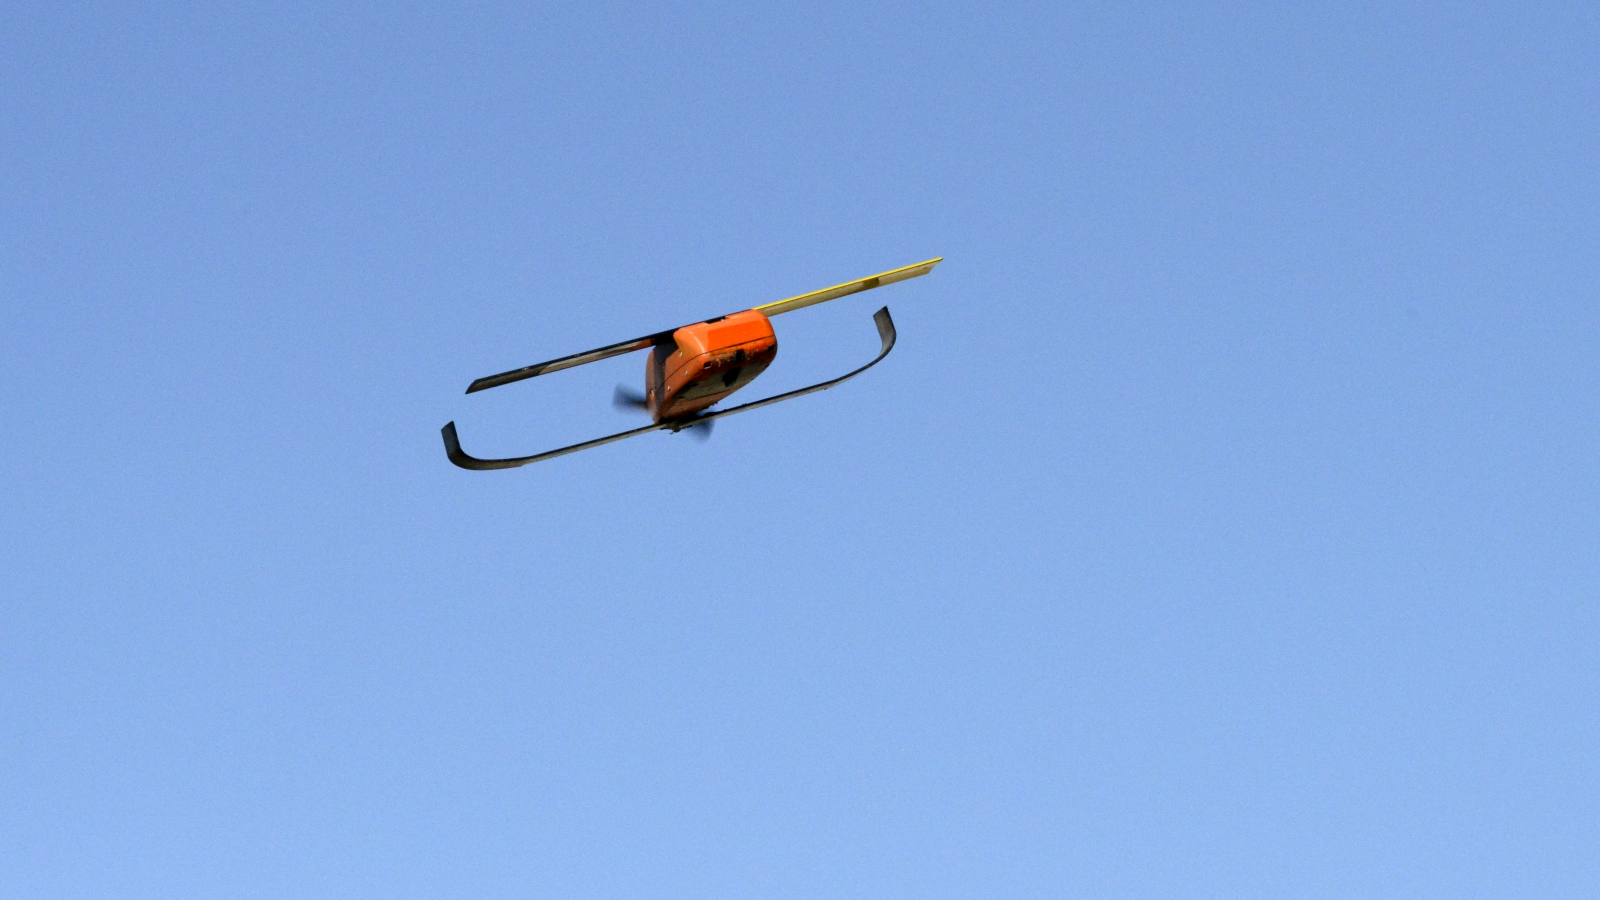 This miniature unmanned aerial vehicle is capable of autonomous navigation, including coordinated maneuvering within a large group of autonomous UAS.